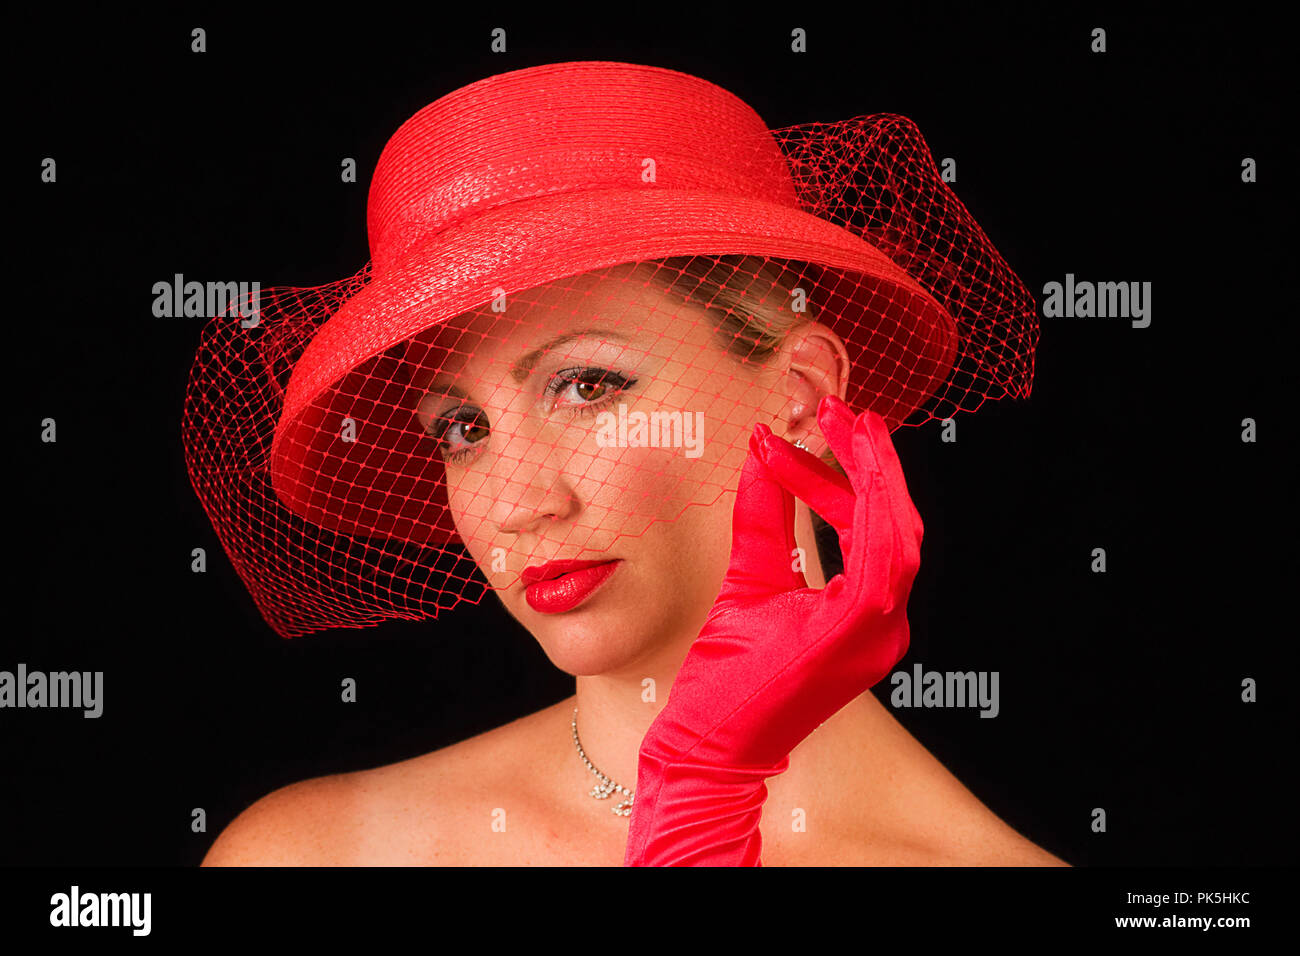 Lady wearing red retro hat with small veil and hat alone in one image. Both  isolated on black background. bf00f00a19b9